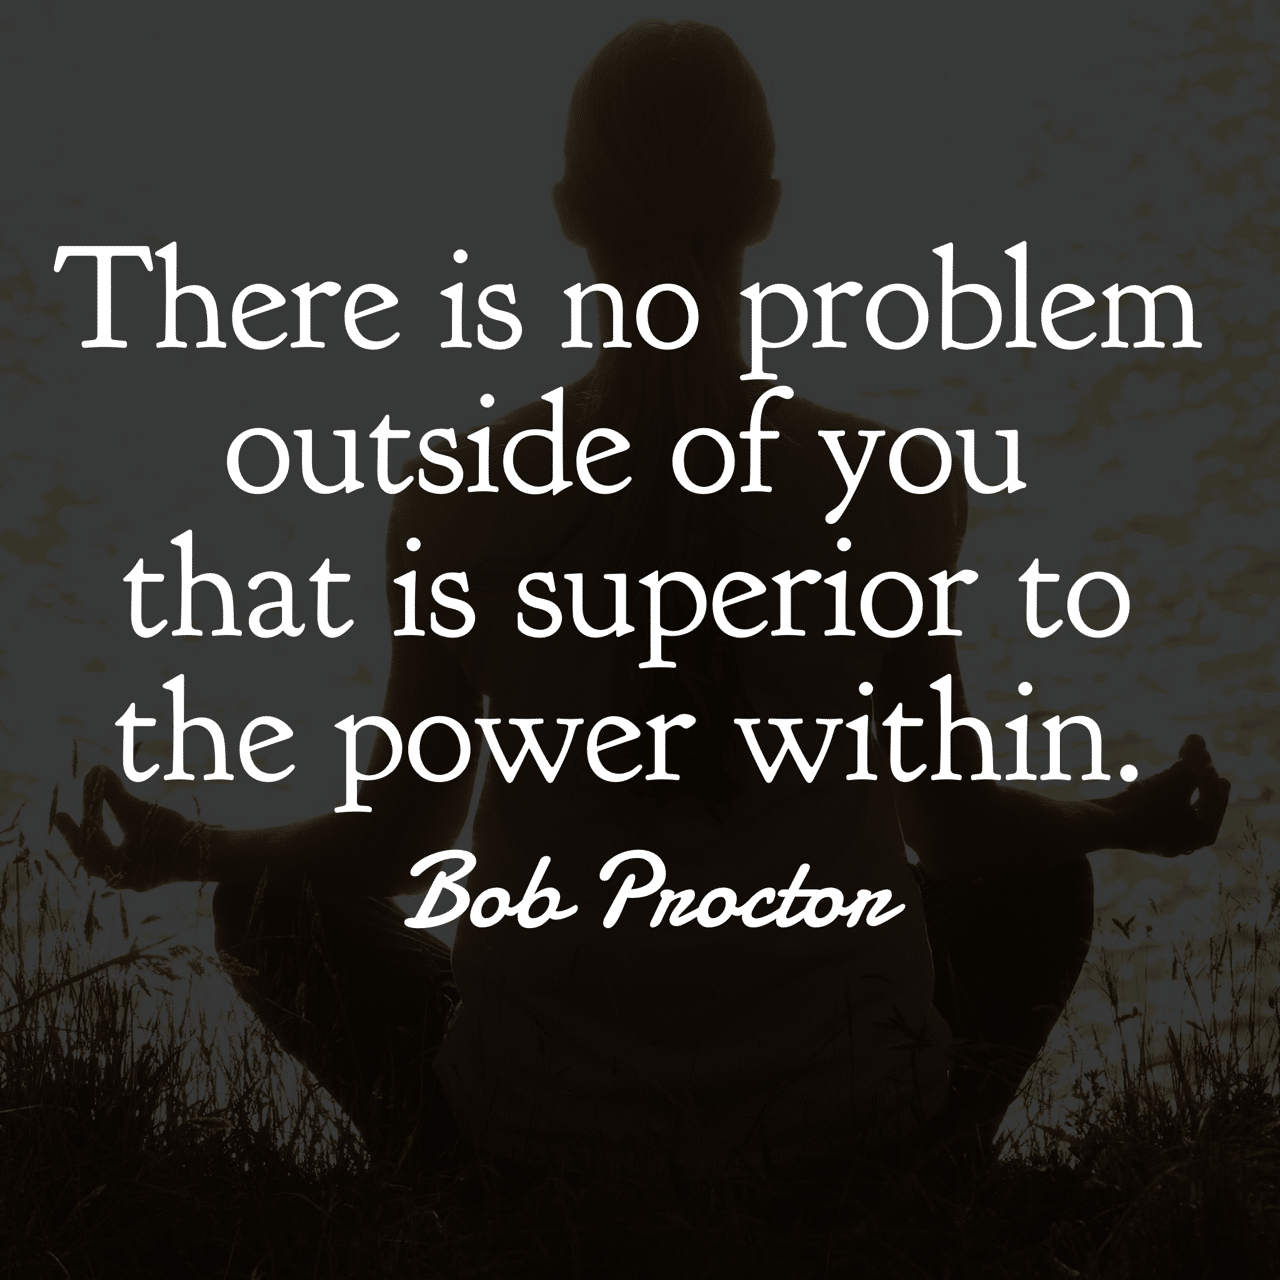 30 Bob Proctor Quotes On Life And The Law of Attraction